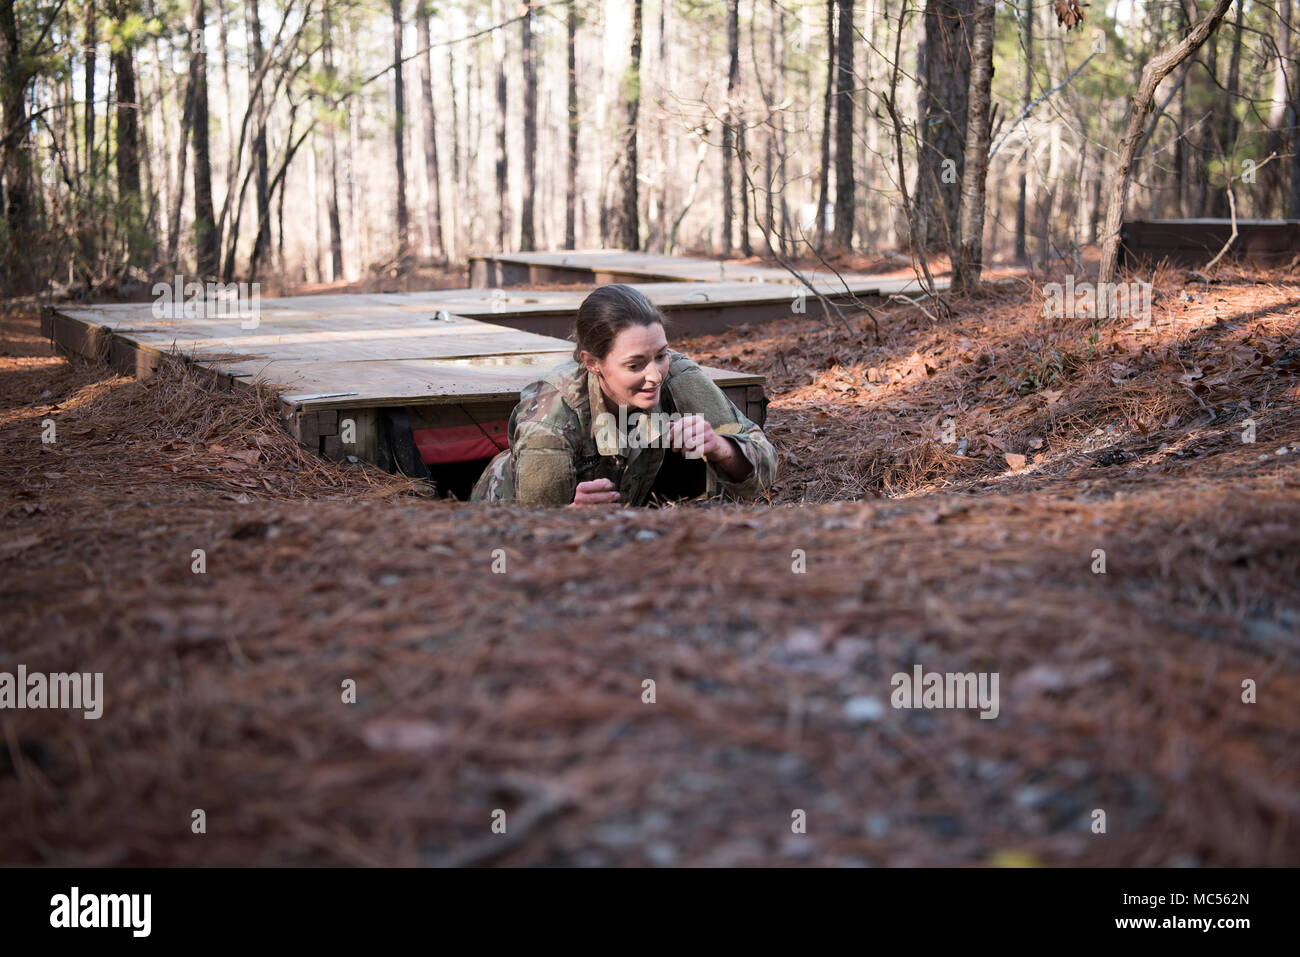 Spc. Michelle Green, combat medic, Medical Command, South Carolina Army National Guard, crawls out of an obstacle during the South Carolina Army National Guard Best Warrior competition at the Fit to Win obstacle course, Fort Jackson, South Carolina, Jan. 29. Green, a native of Summerville, South Carolina, has been a member of the South Carolina Army National Guard for 18 months and was the only female competitor this year. (U.S. Army photo by Staff Sgt. Jerry Boffen, 108th Public Affairs Detachment) Stock Photo